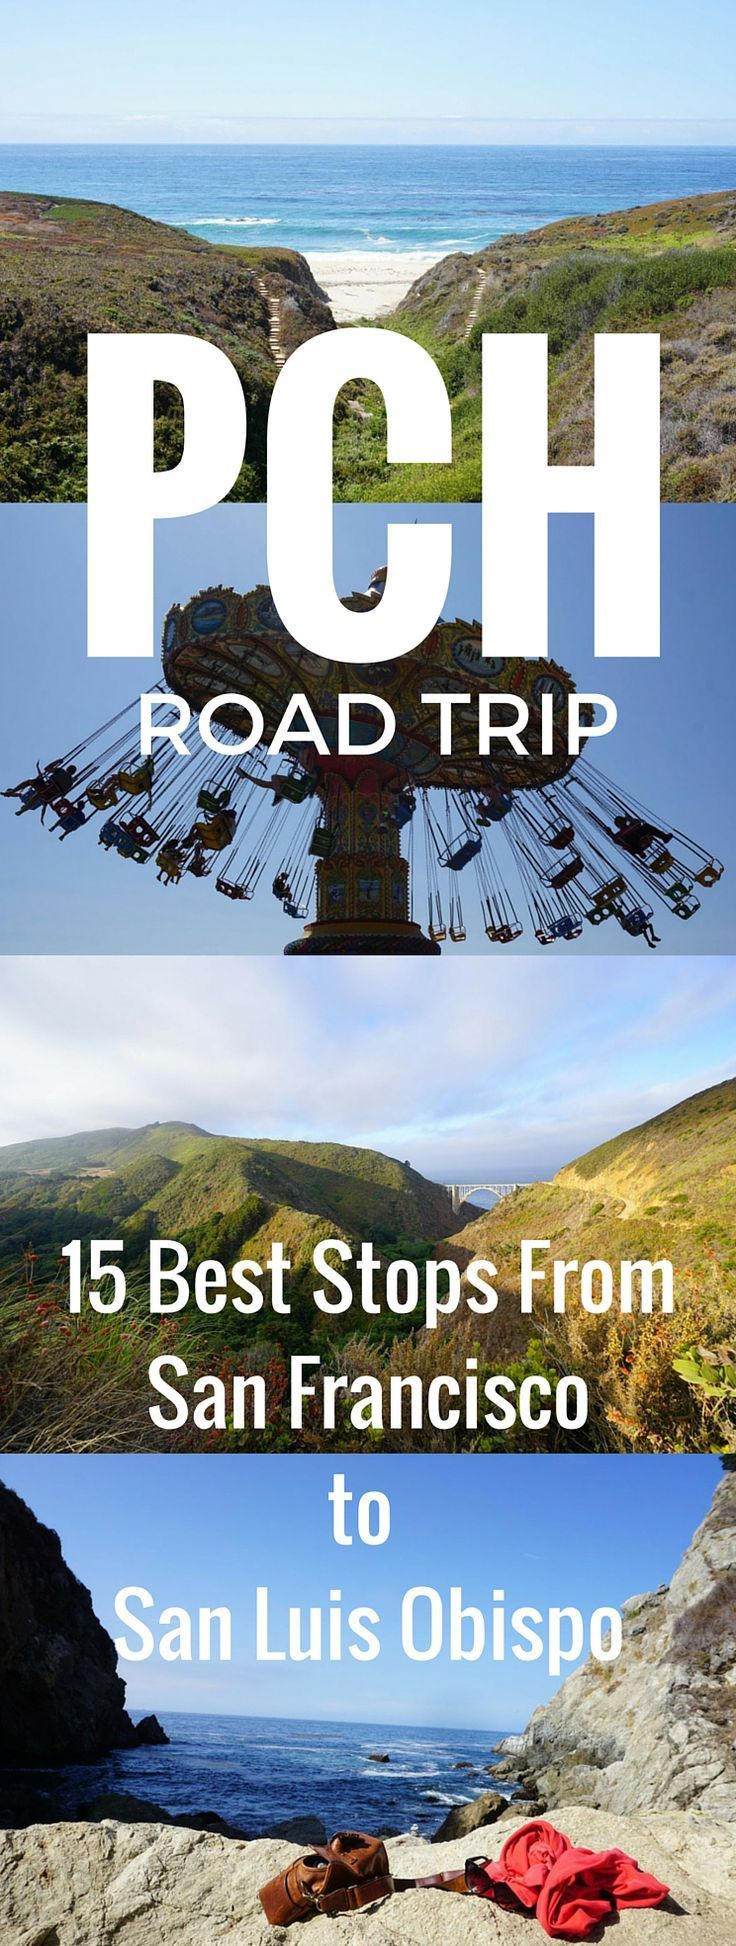 pacific coast highway road trip where to stop between san francisco rh pinterest com